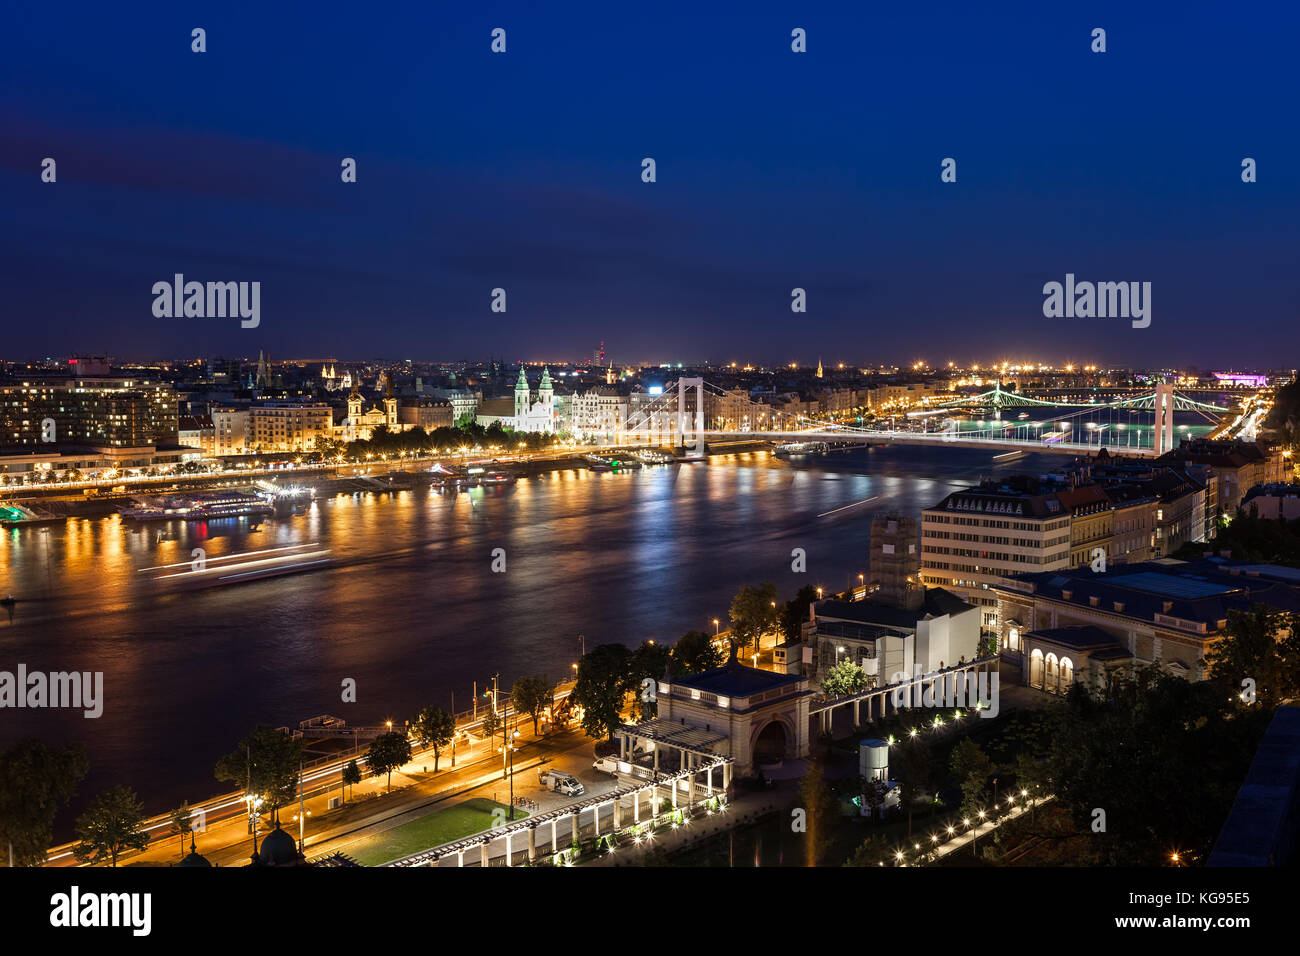 Budapest city skyline by night in Hungary, urban nightscape along Danube River - Stock Image